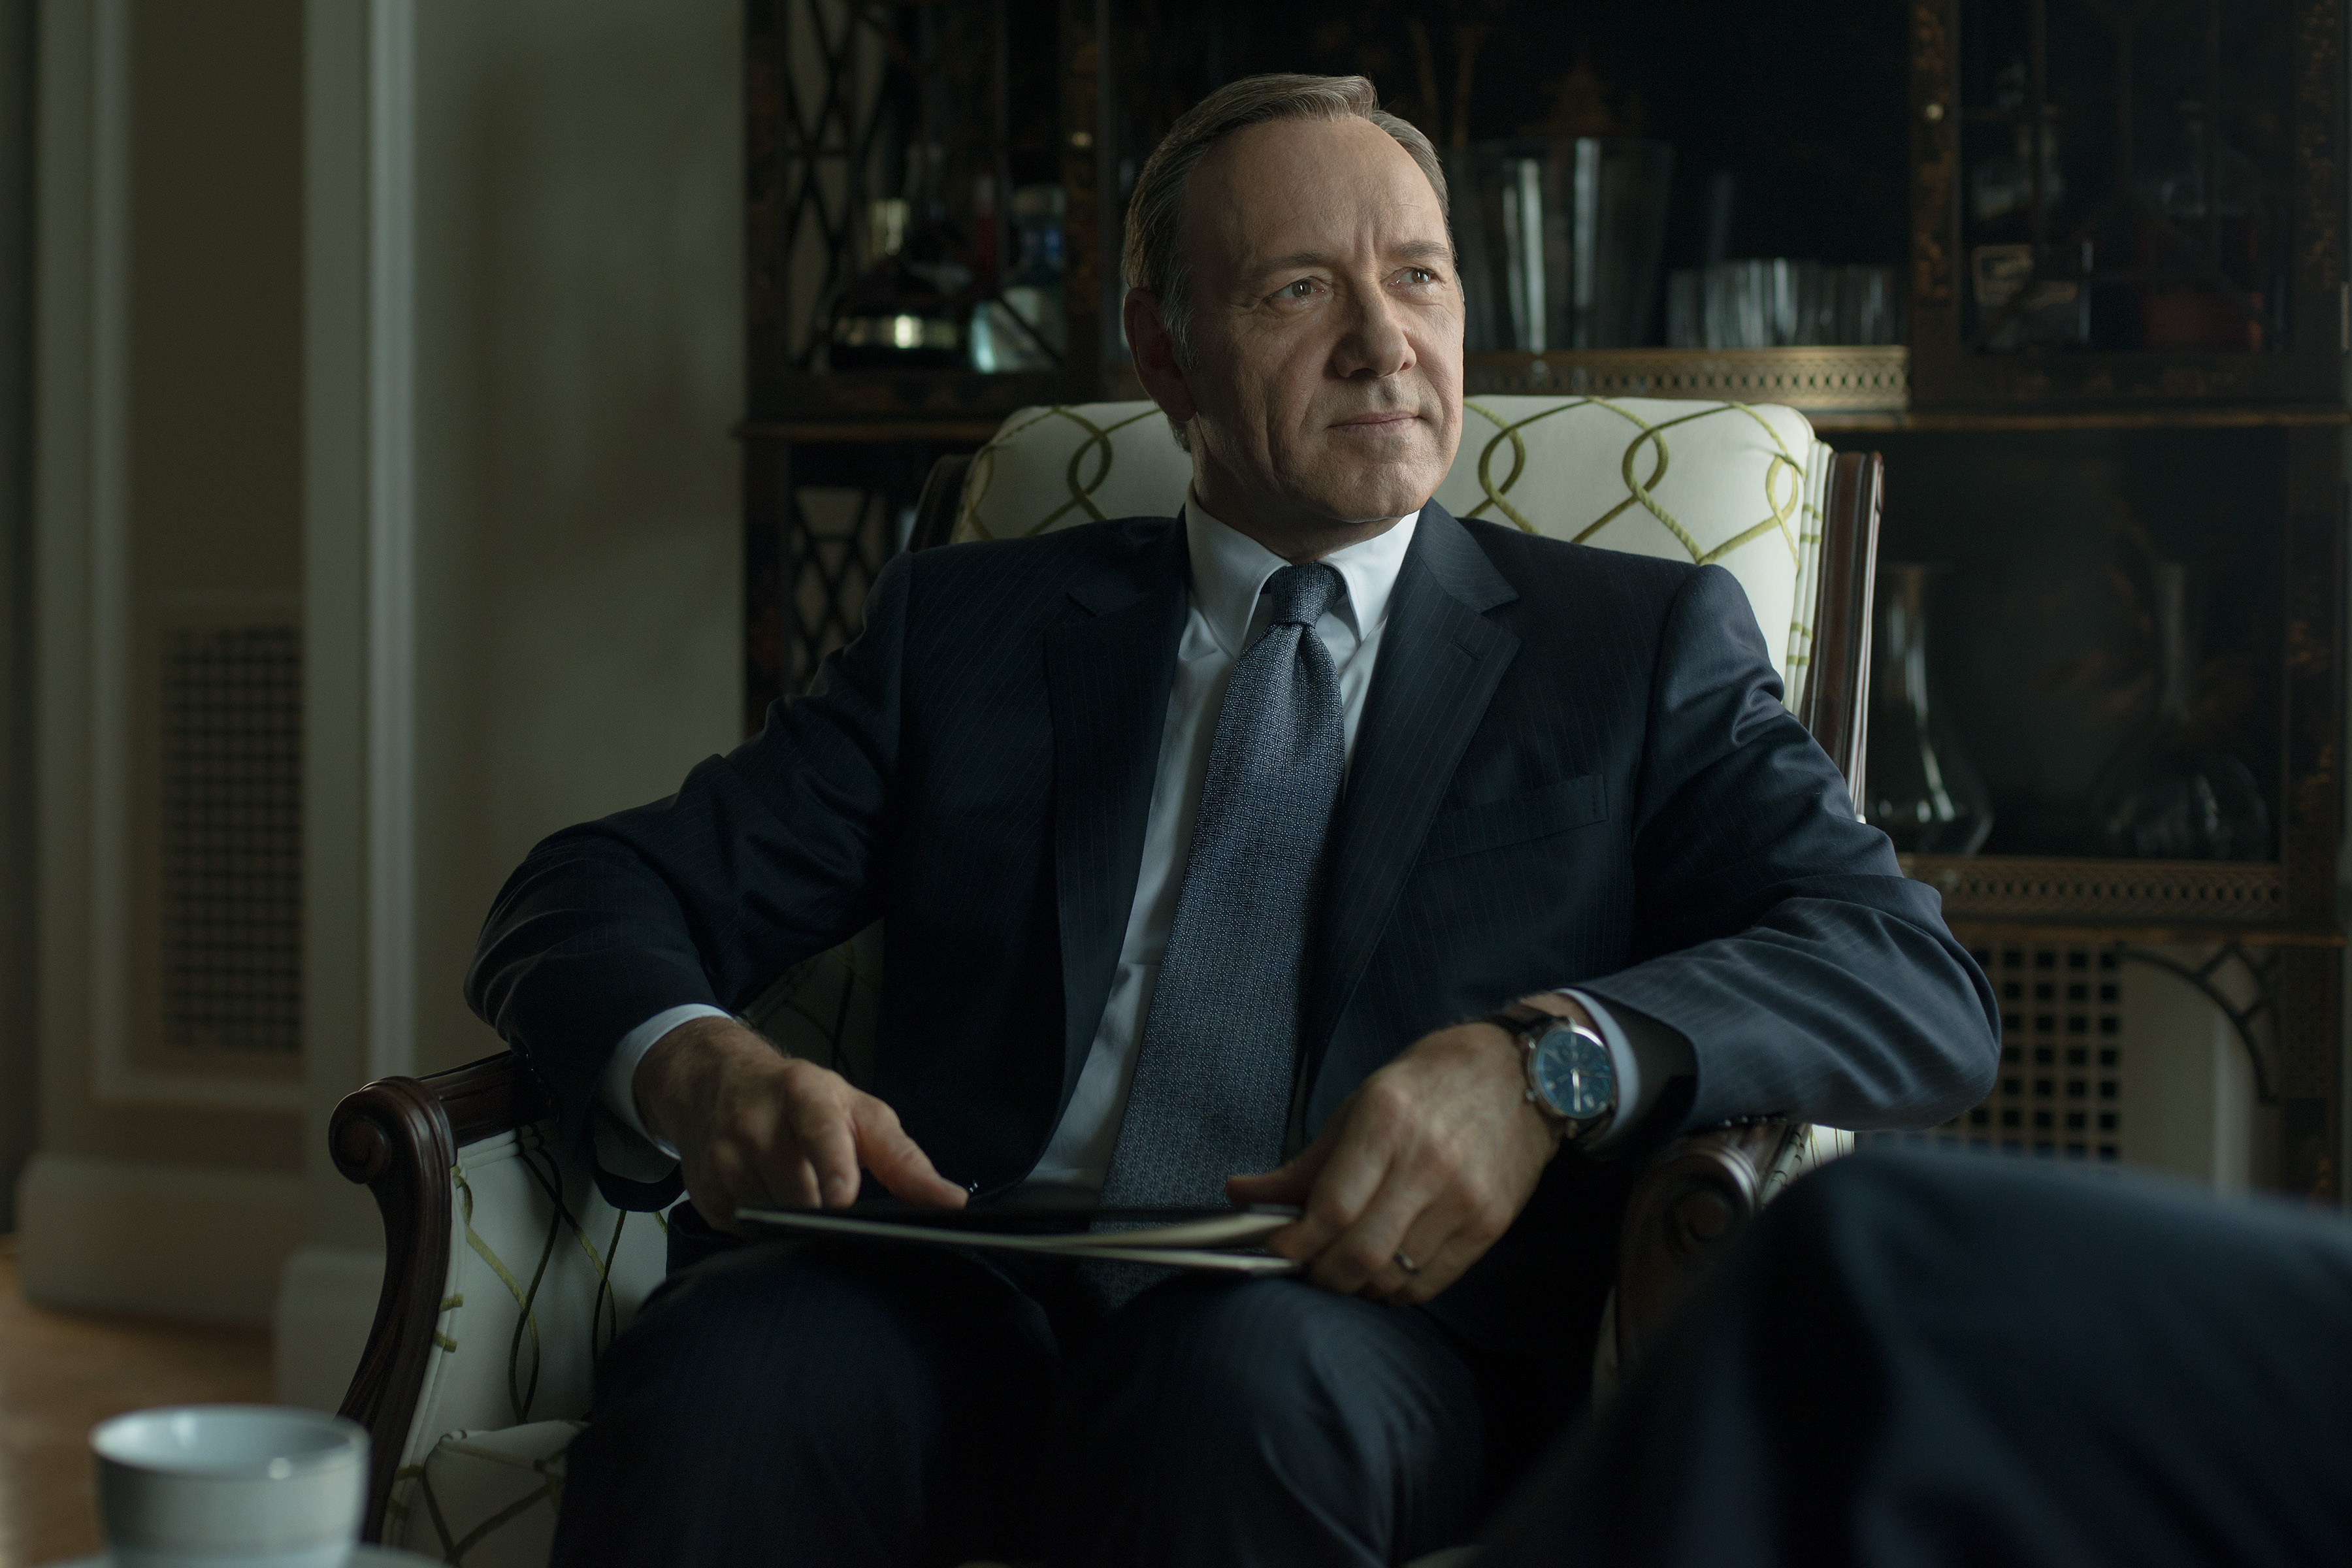 house of cards rowing machine meaning